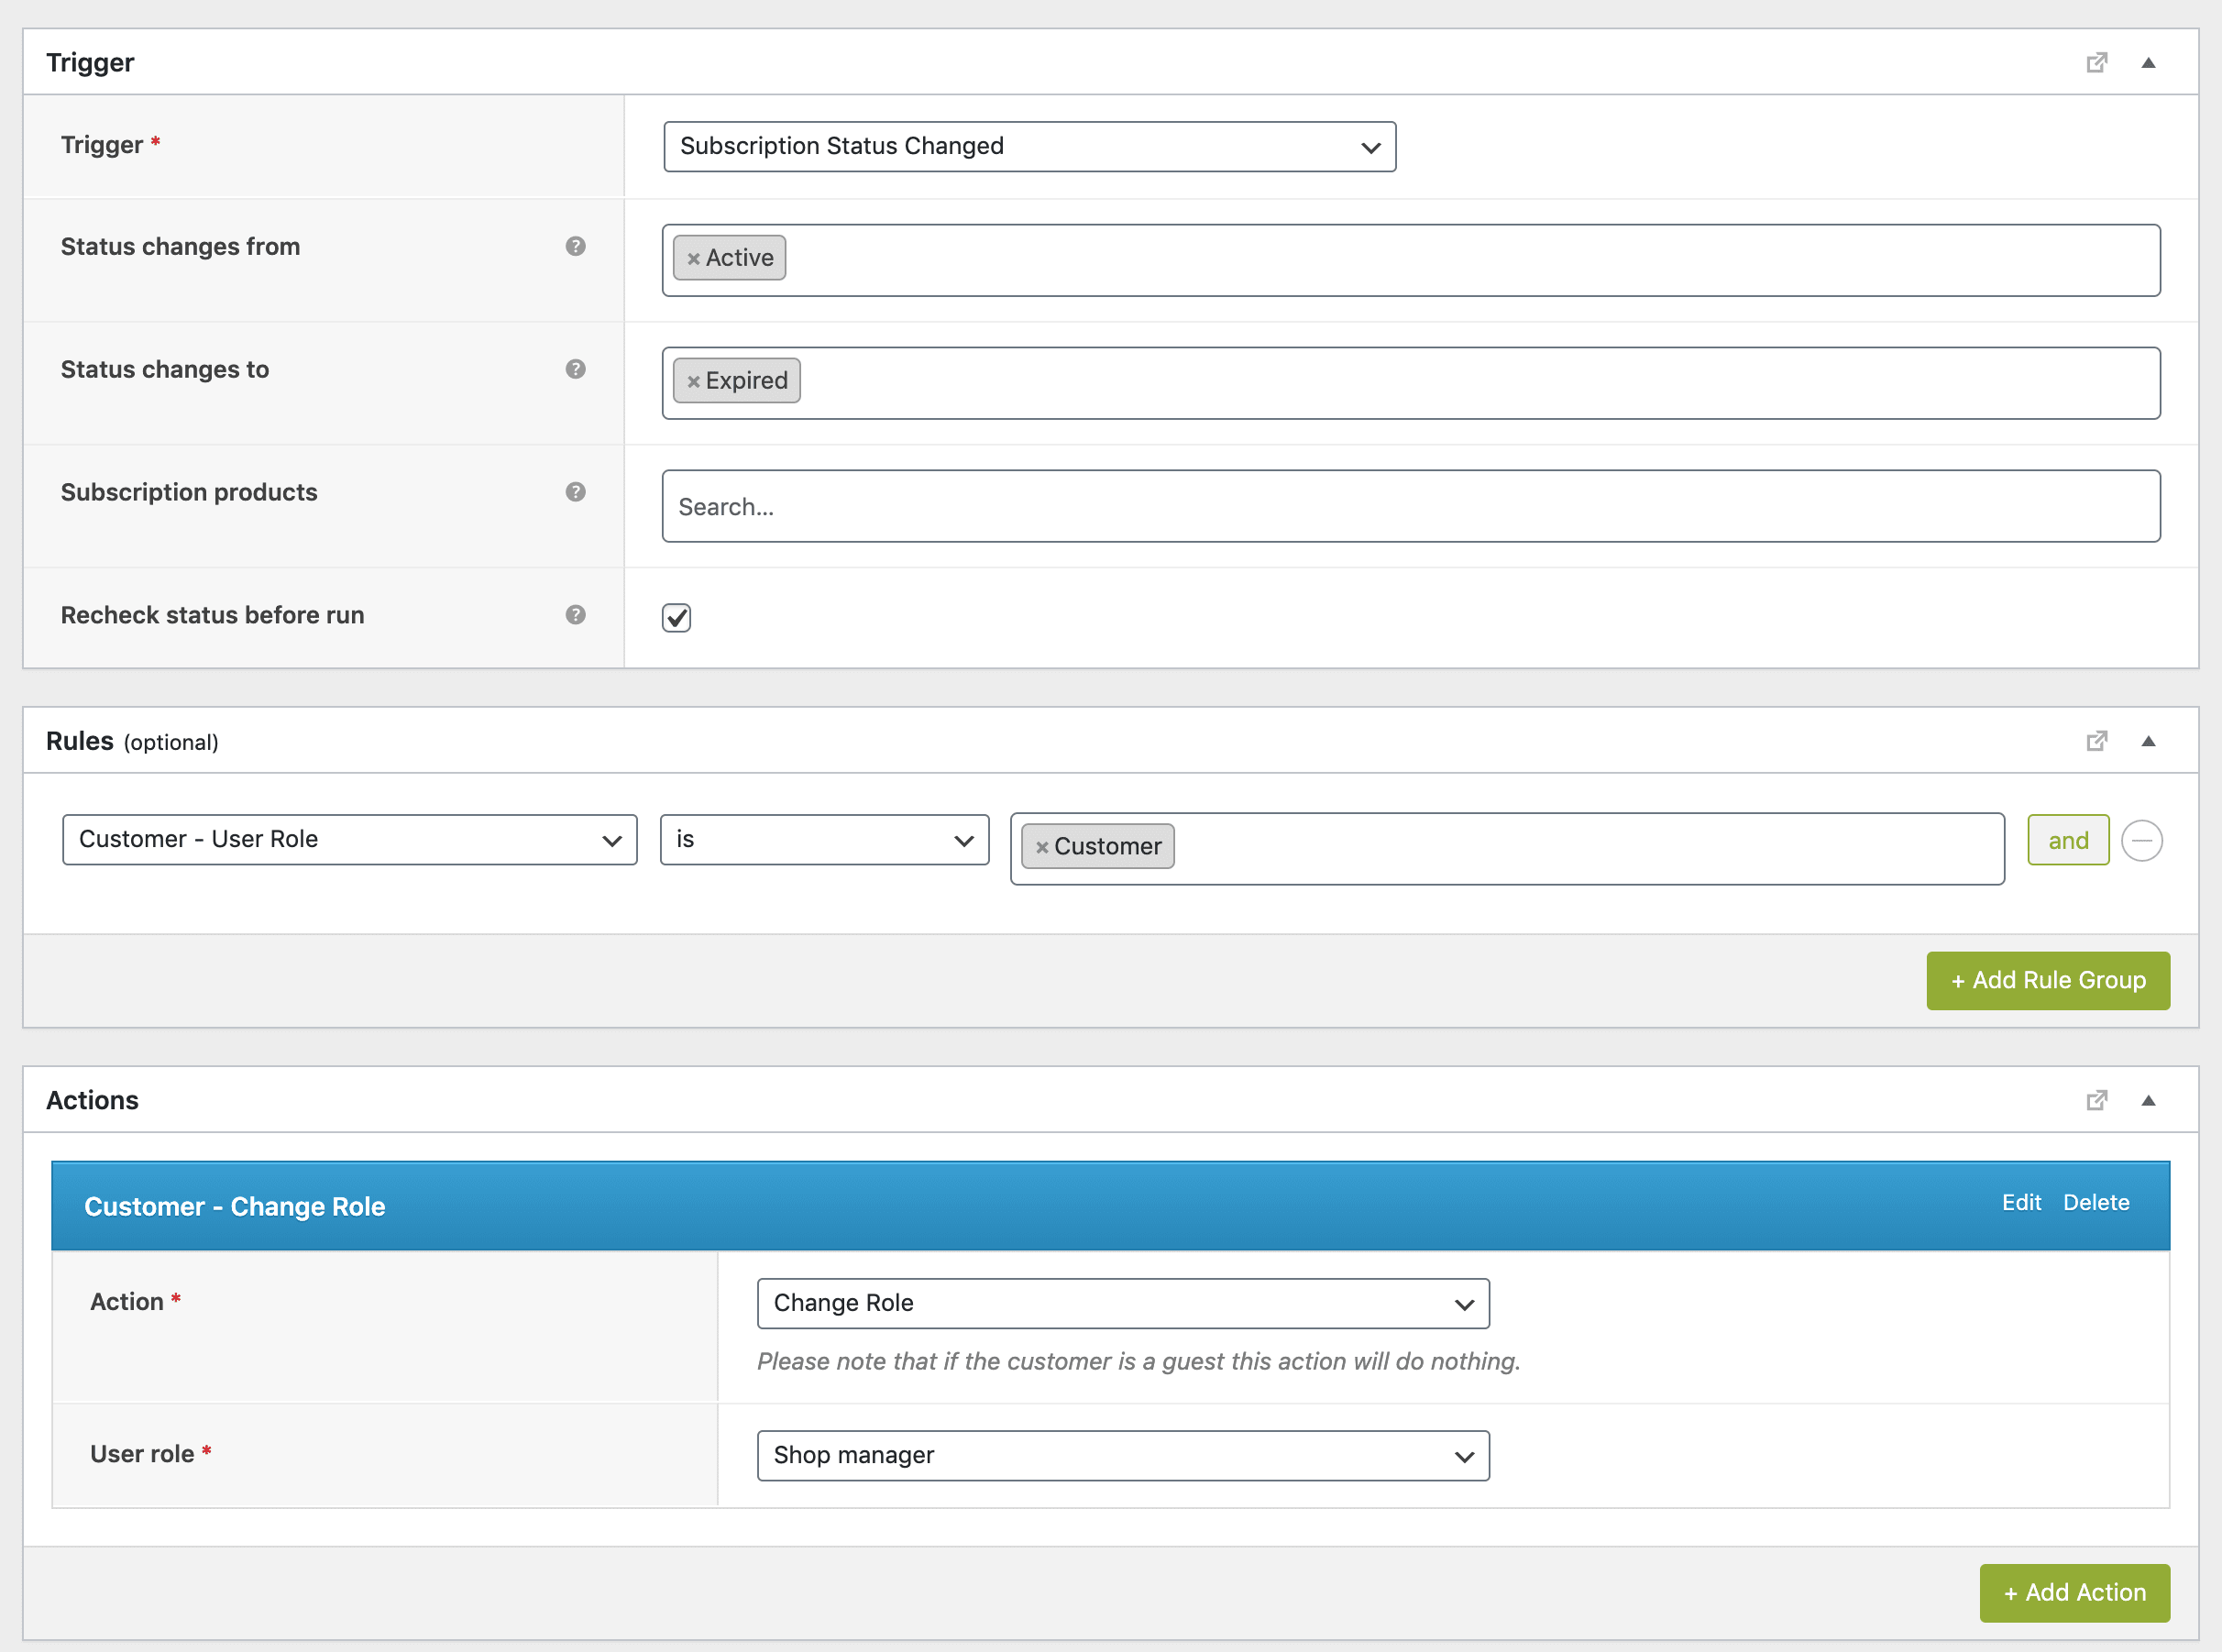 Trigger Change user role Screen Shot 2019-12-11 at 11.26.52.png